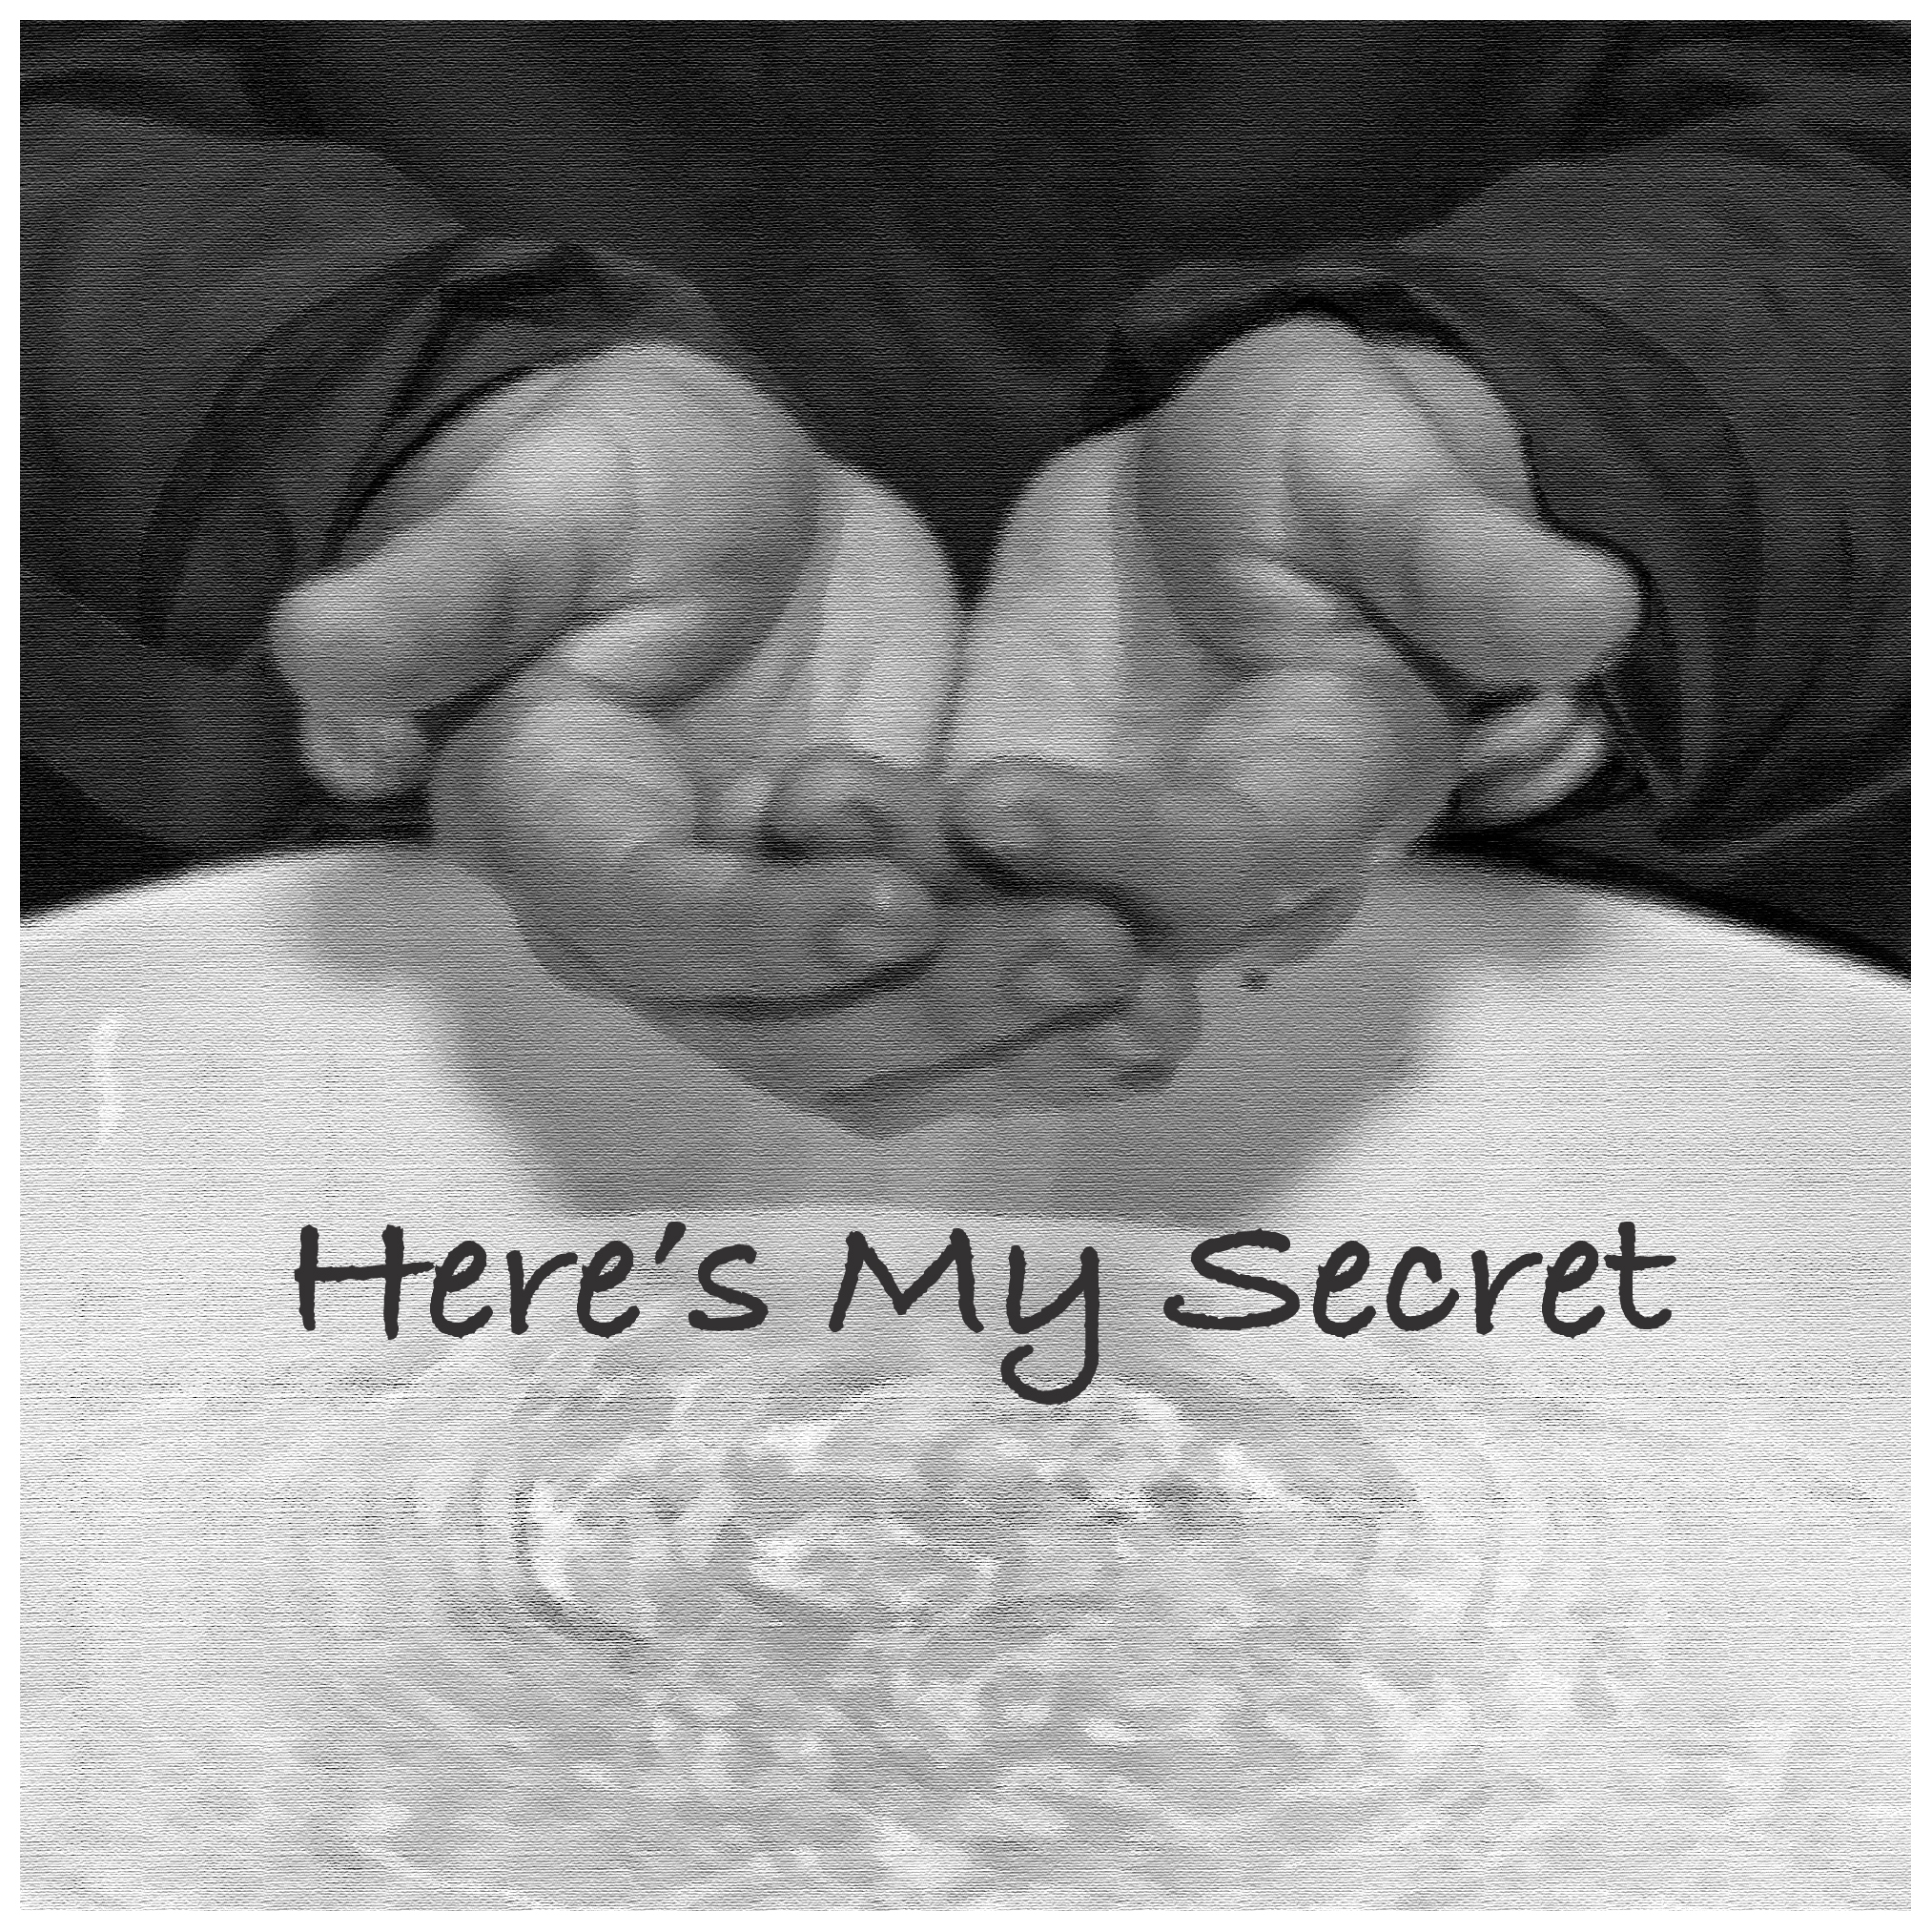 Here's My Secret